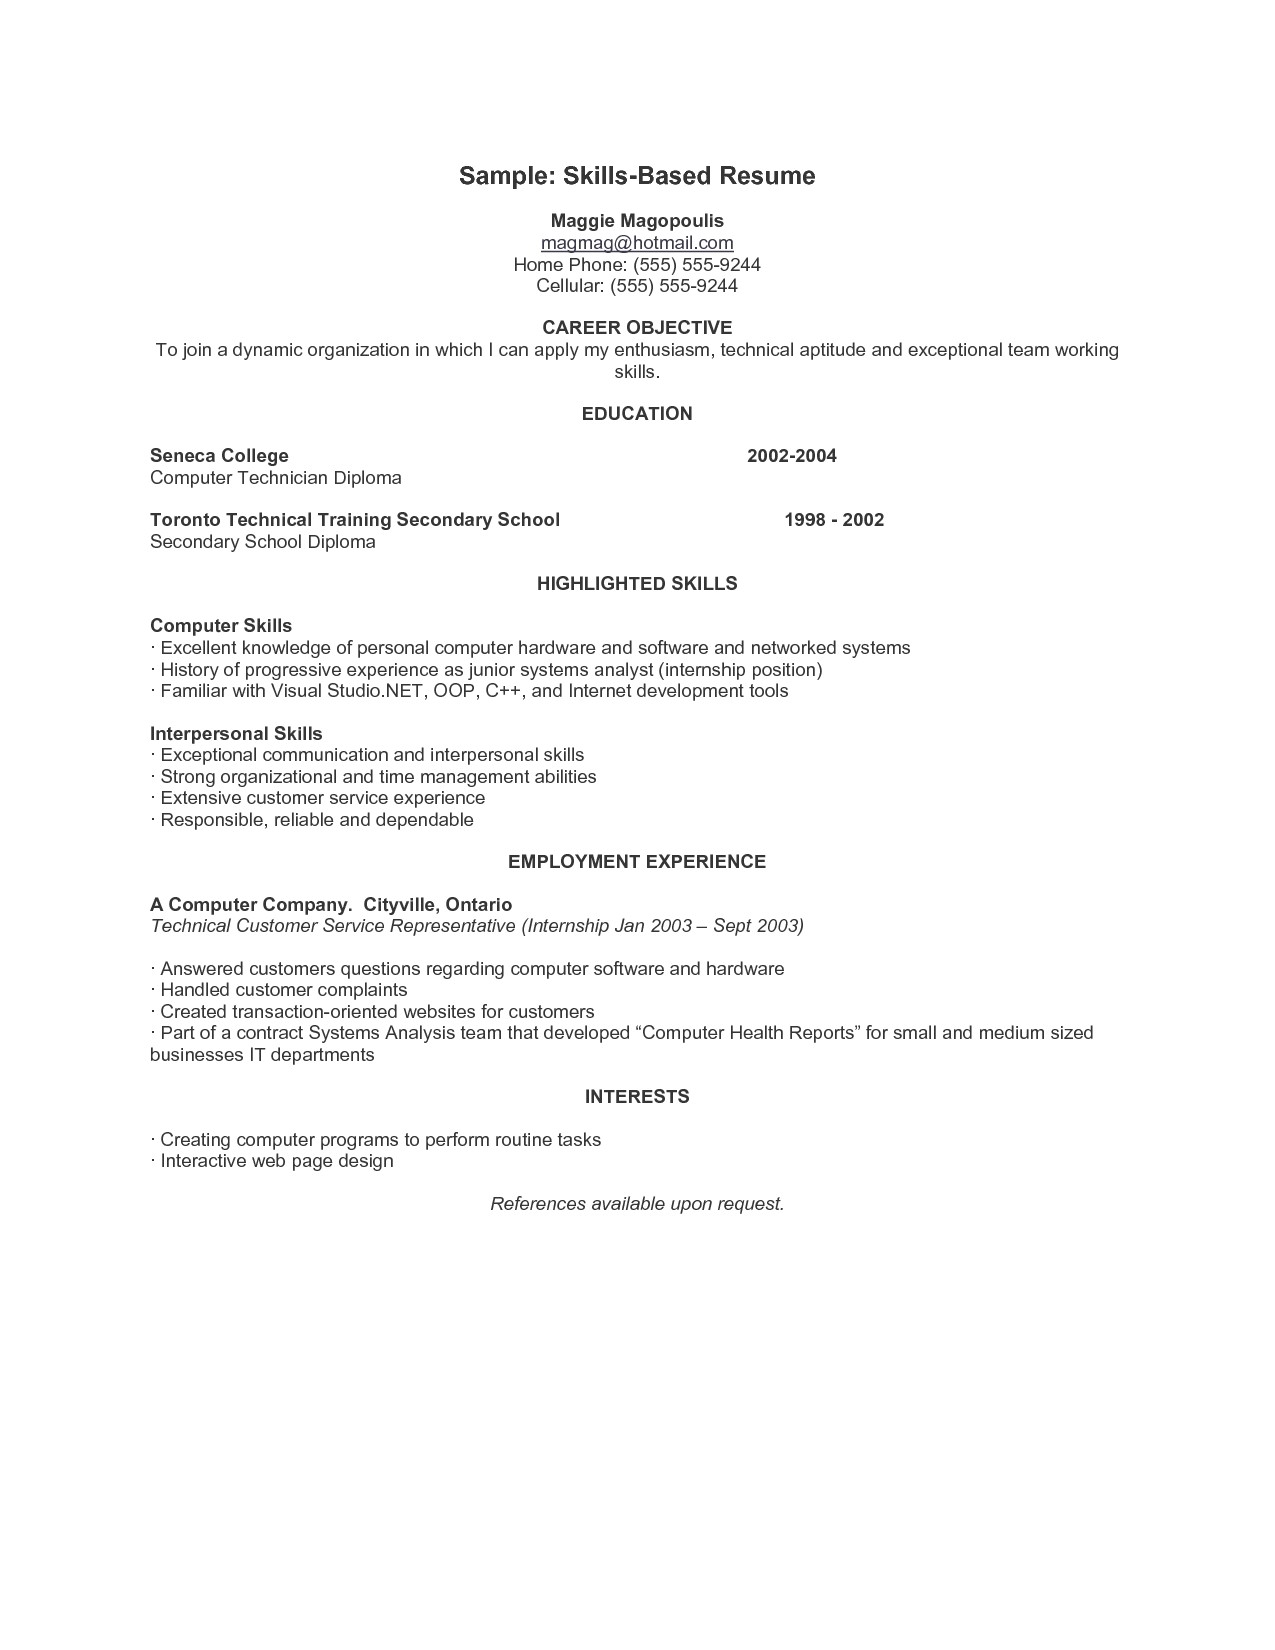 Education Based Resume Template Education Based Resume Best Letter Sample